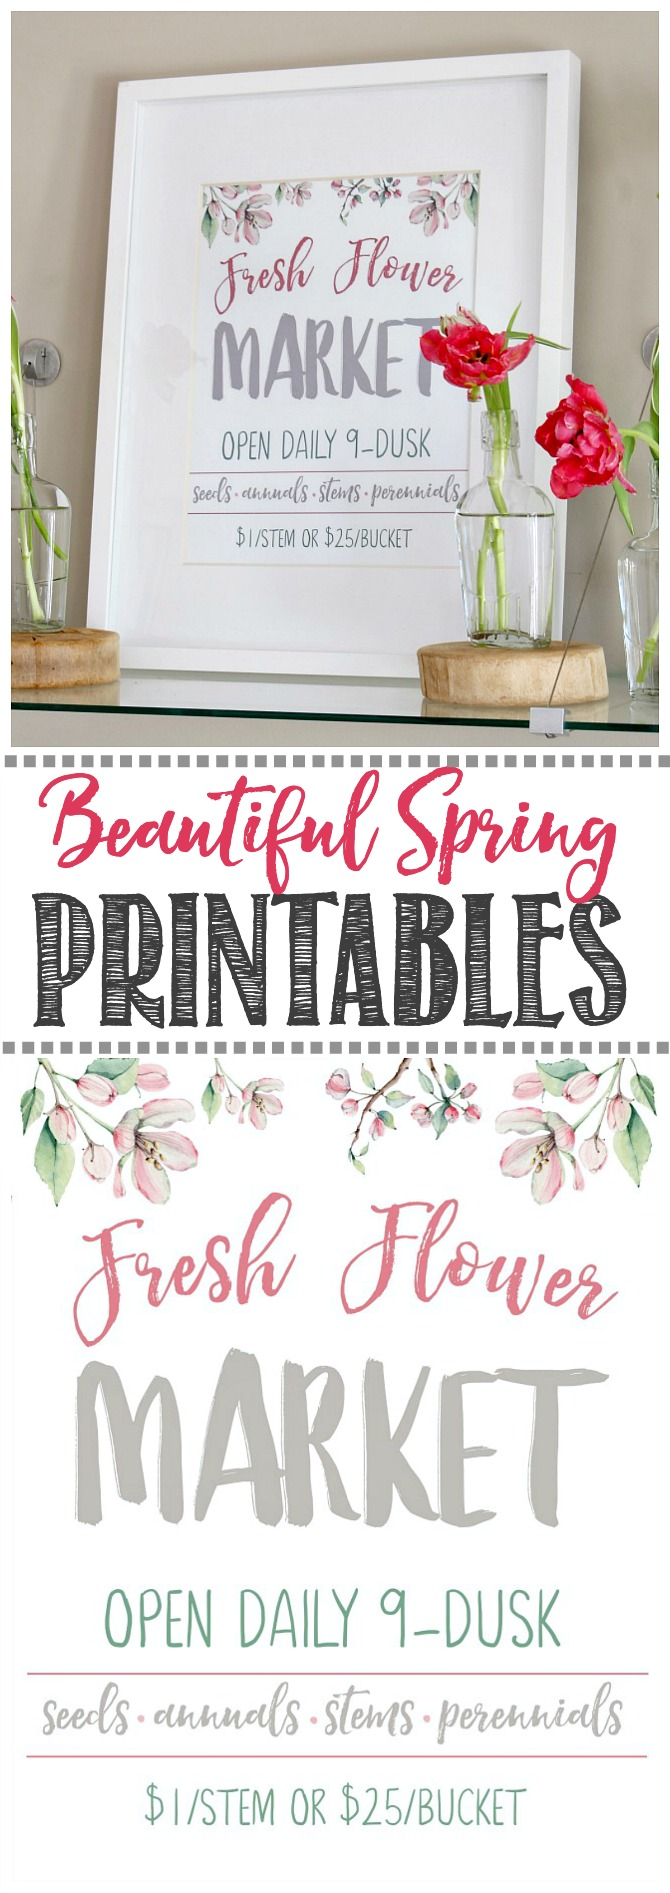 photograph regarding Spring Printable named Fresh new Flower Market place Free of charge Spring Printable - Contemporary and Scentsible